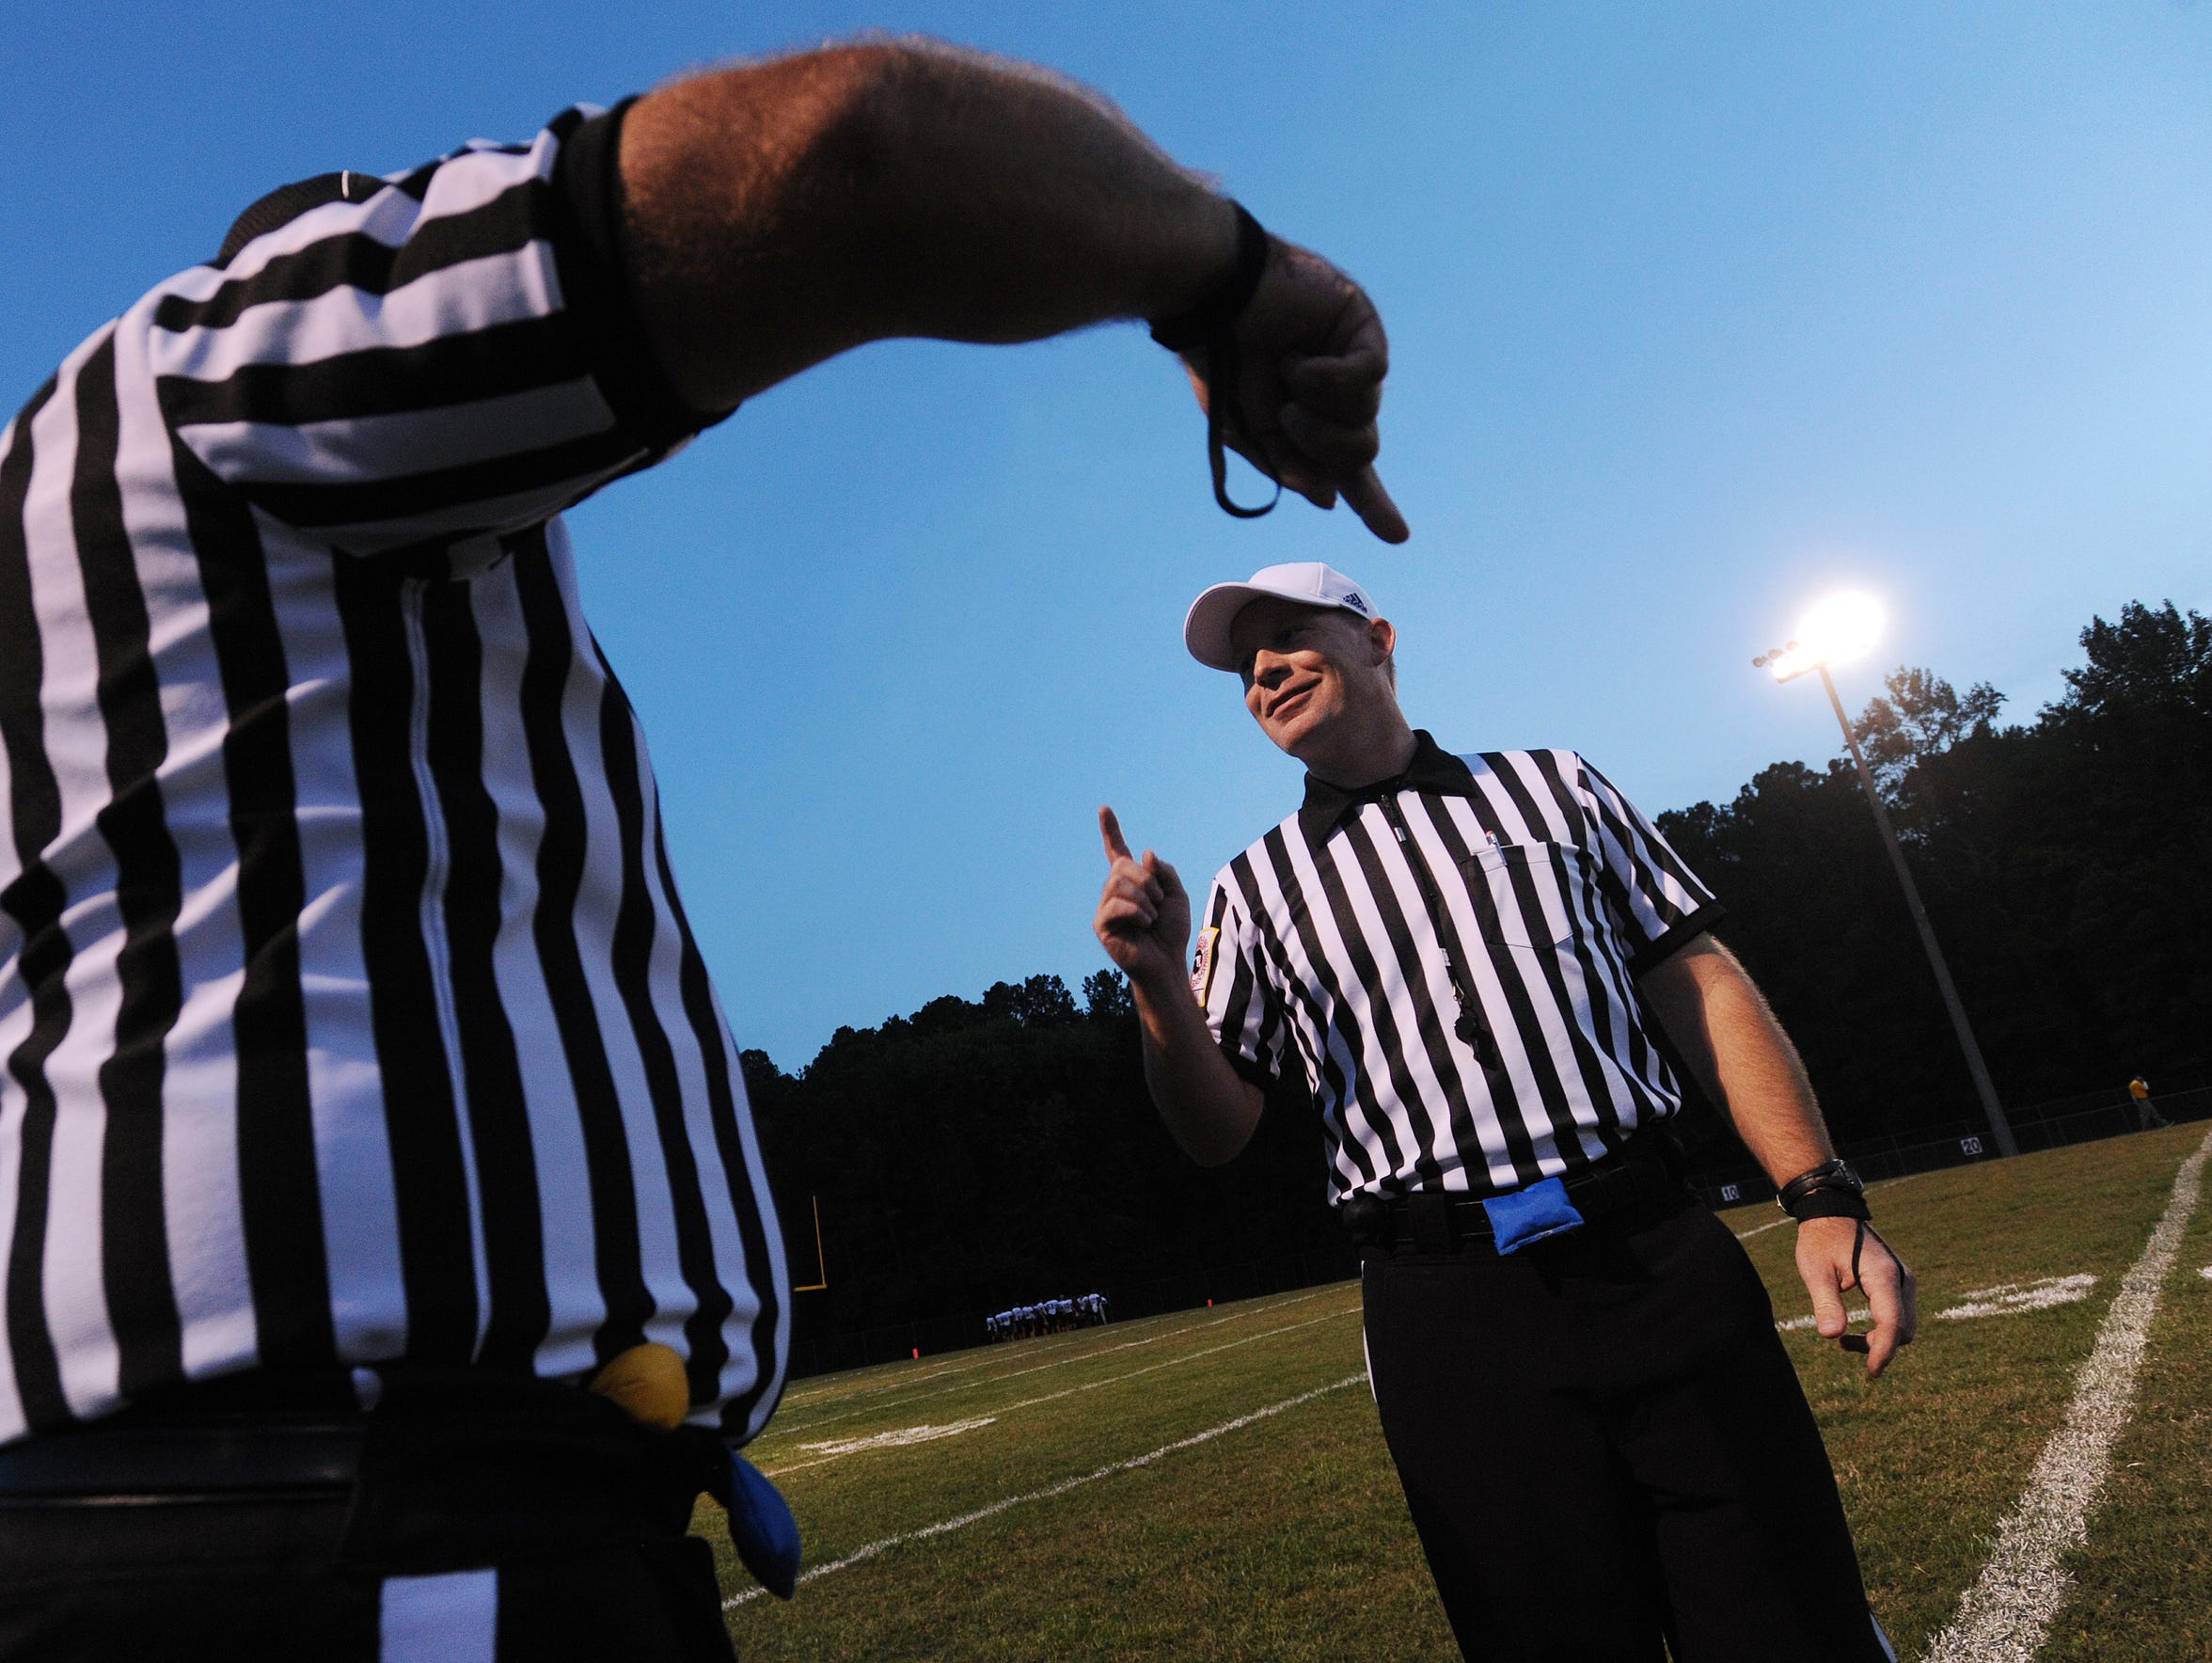 Referee Chuck Brosch, right, speaks with one of his